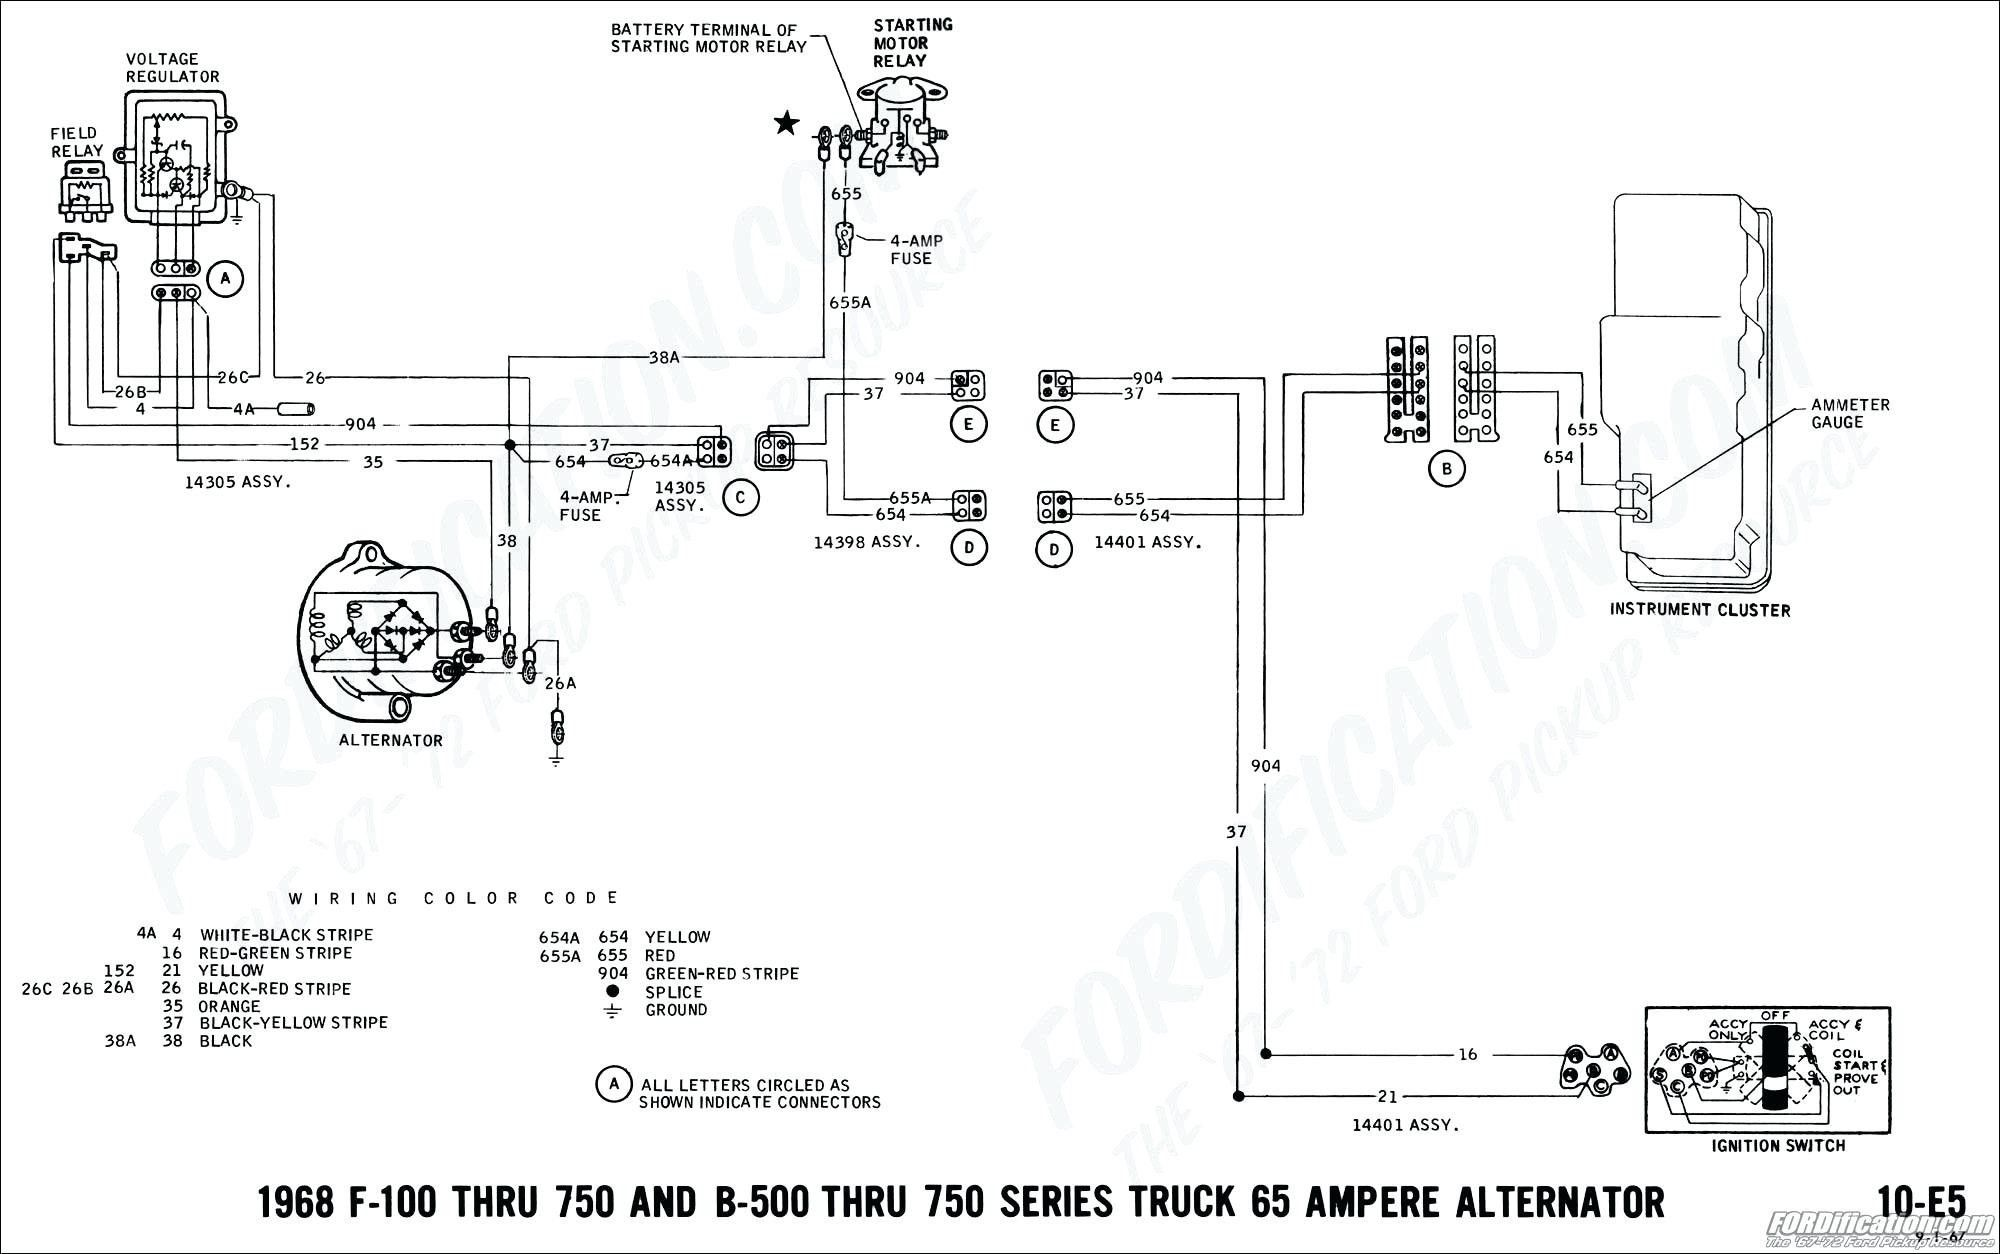 Awesome Three Wire Alternator Wiring Diagram Gm Diagrams Digramssample Diagramimages Wiringdiagramsample Wiringdiagr Electrical Diagram Alternator Diagram